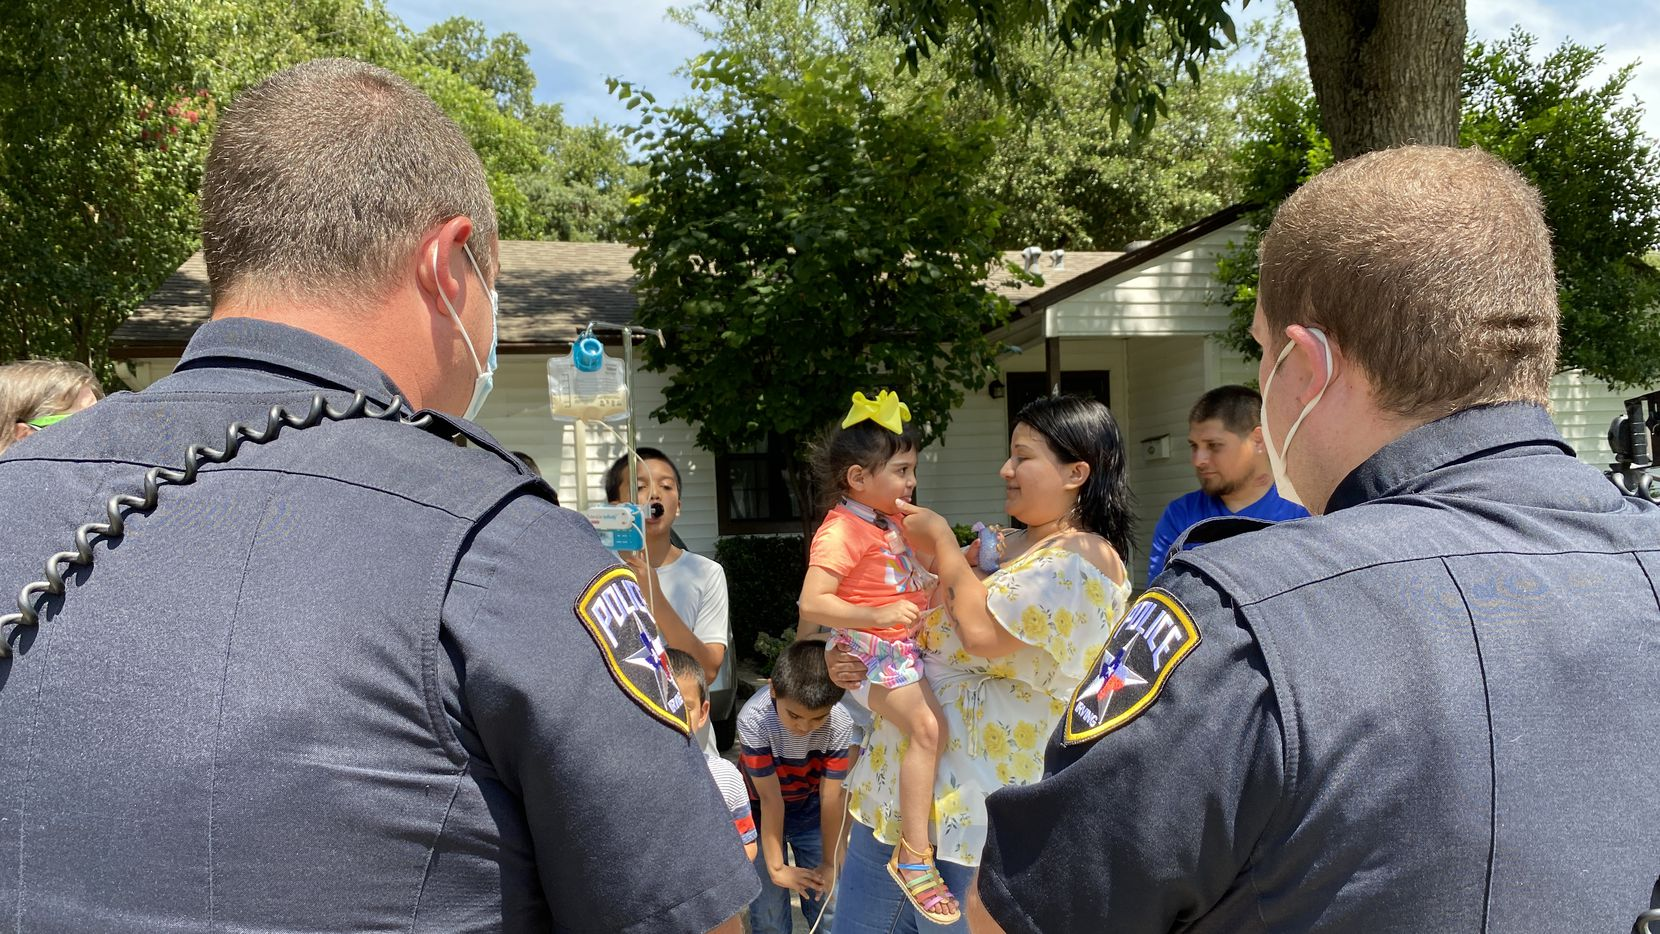 Irving police officers Adam Vanderveer (left) and Jon Long visit with Sarai Tirado on Tuesday, July 7, 2020, at her home following a parade with vehicles from the Irving police and fire departments. Sarai, 4, recently returned home from the hospital where she was recovering after unsecured furniture fell on her.